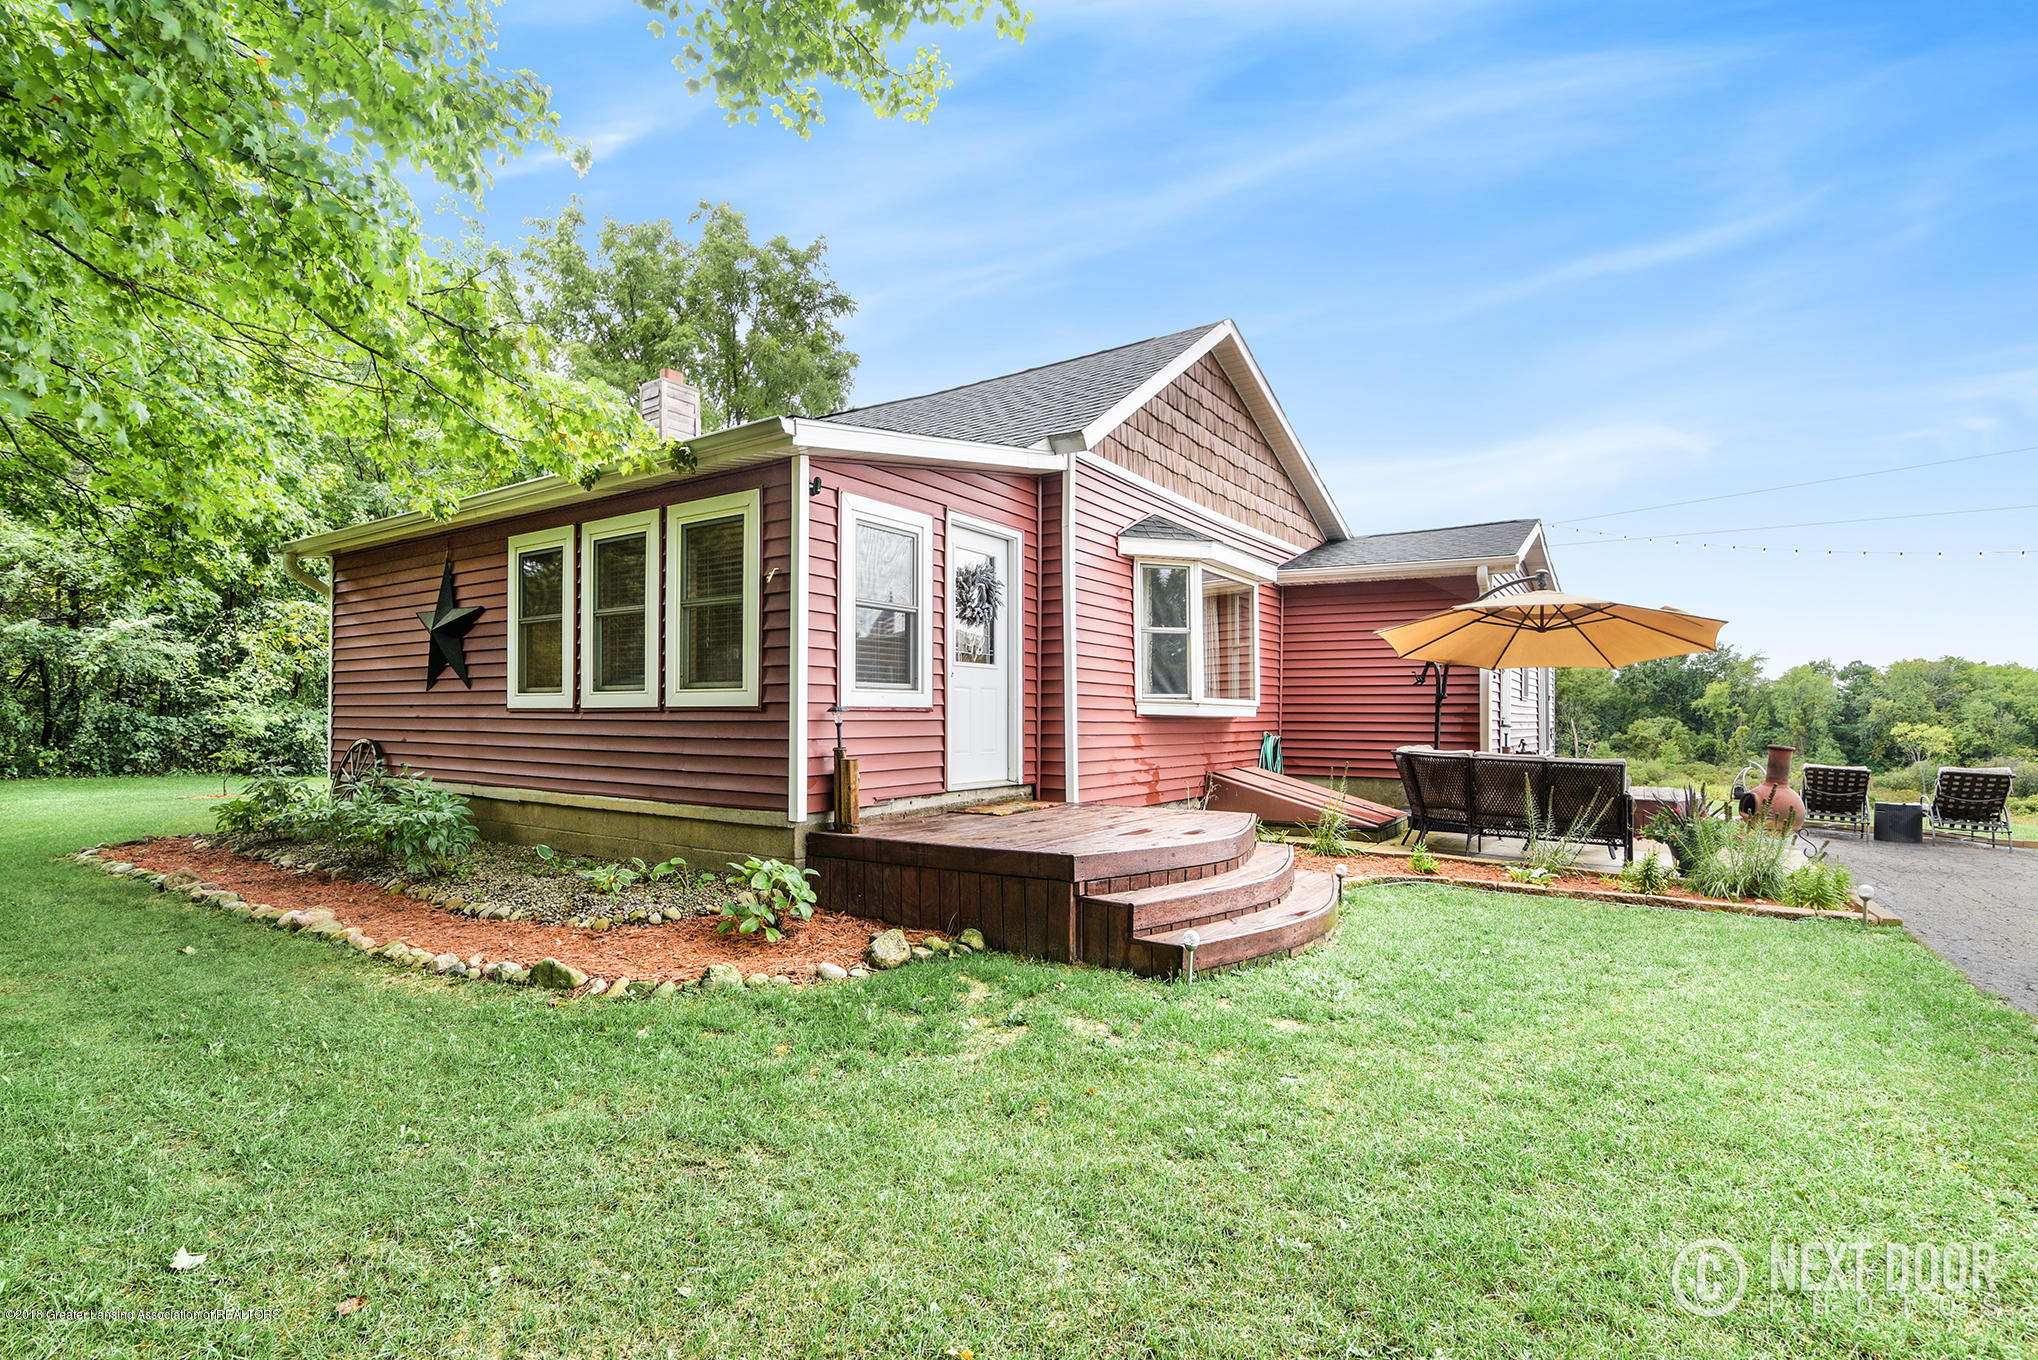 744 S Stine Rd - Outside3 - 3